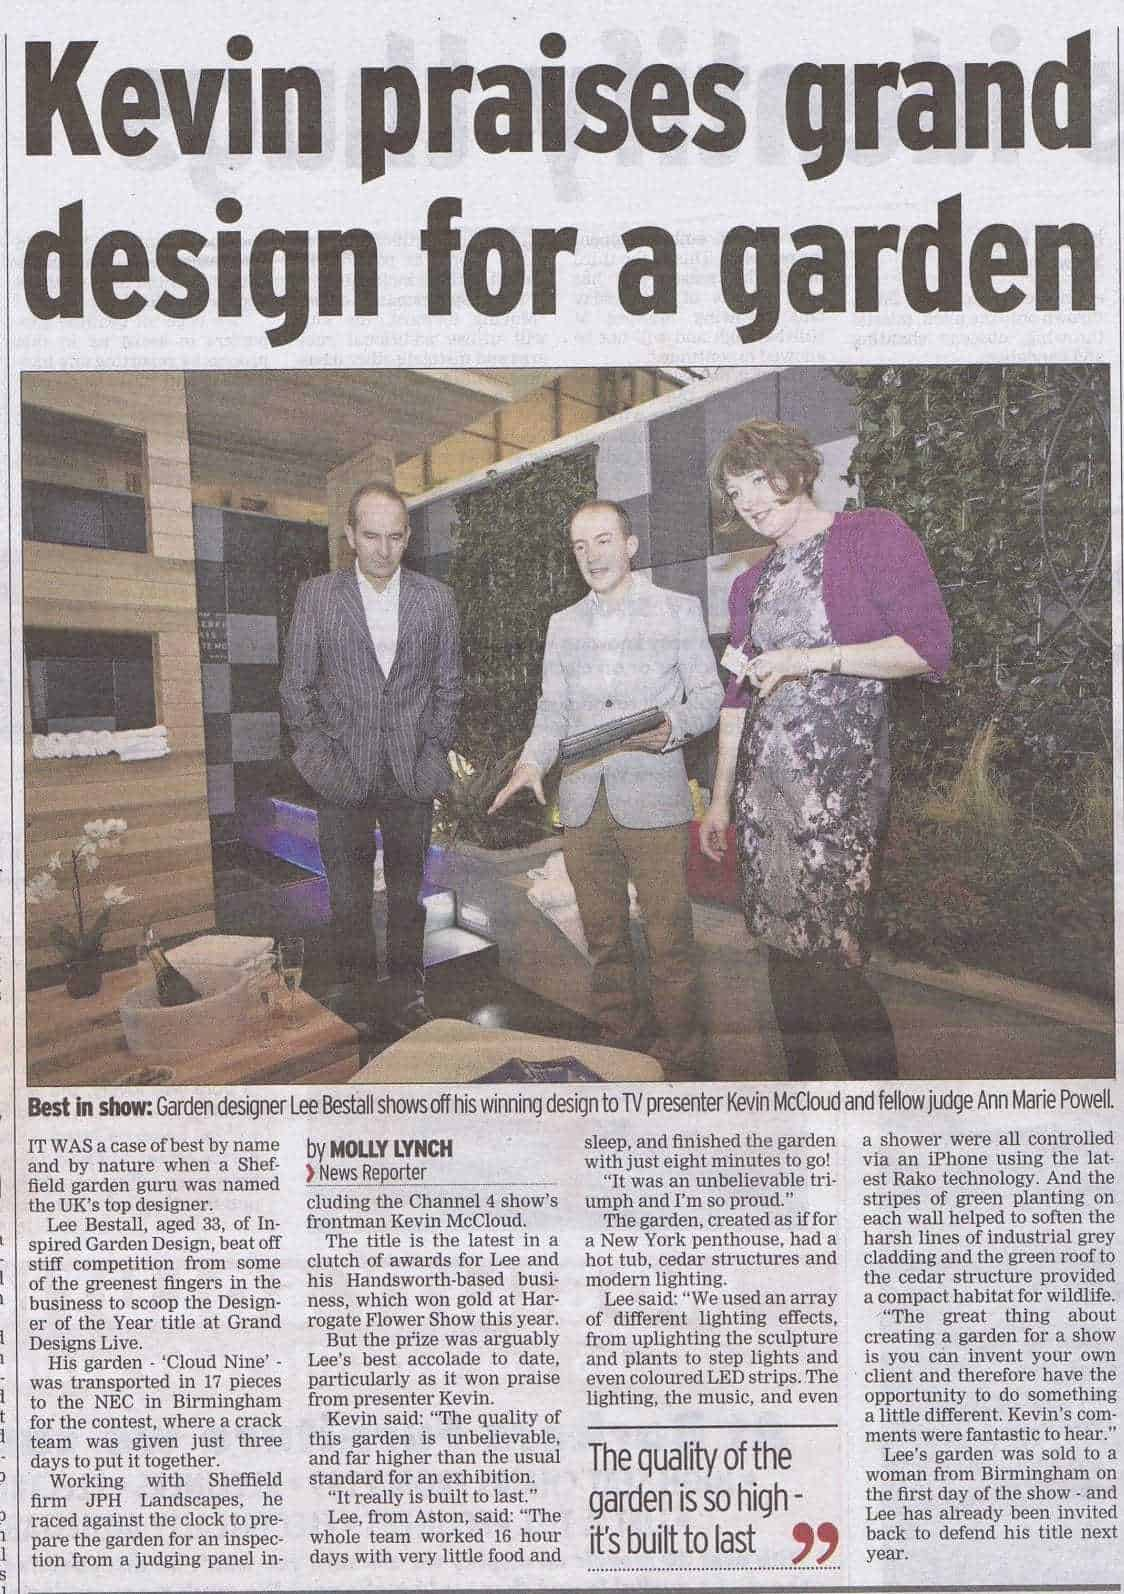 kevin praises grand design for a garden